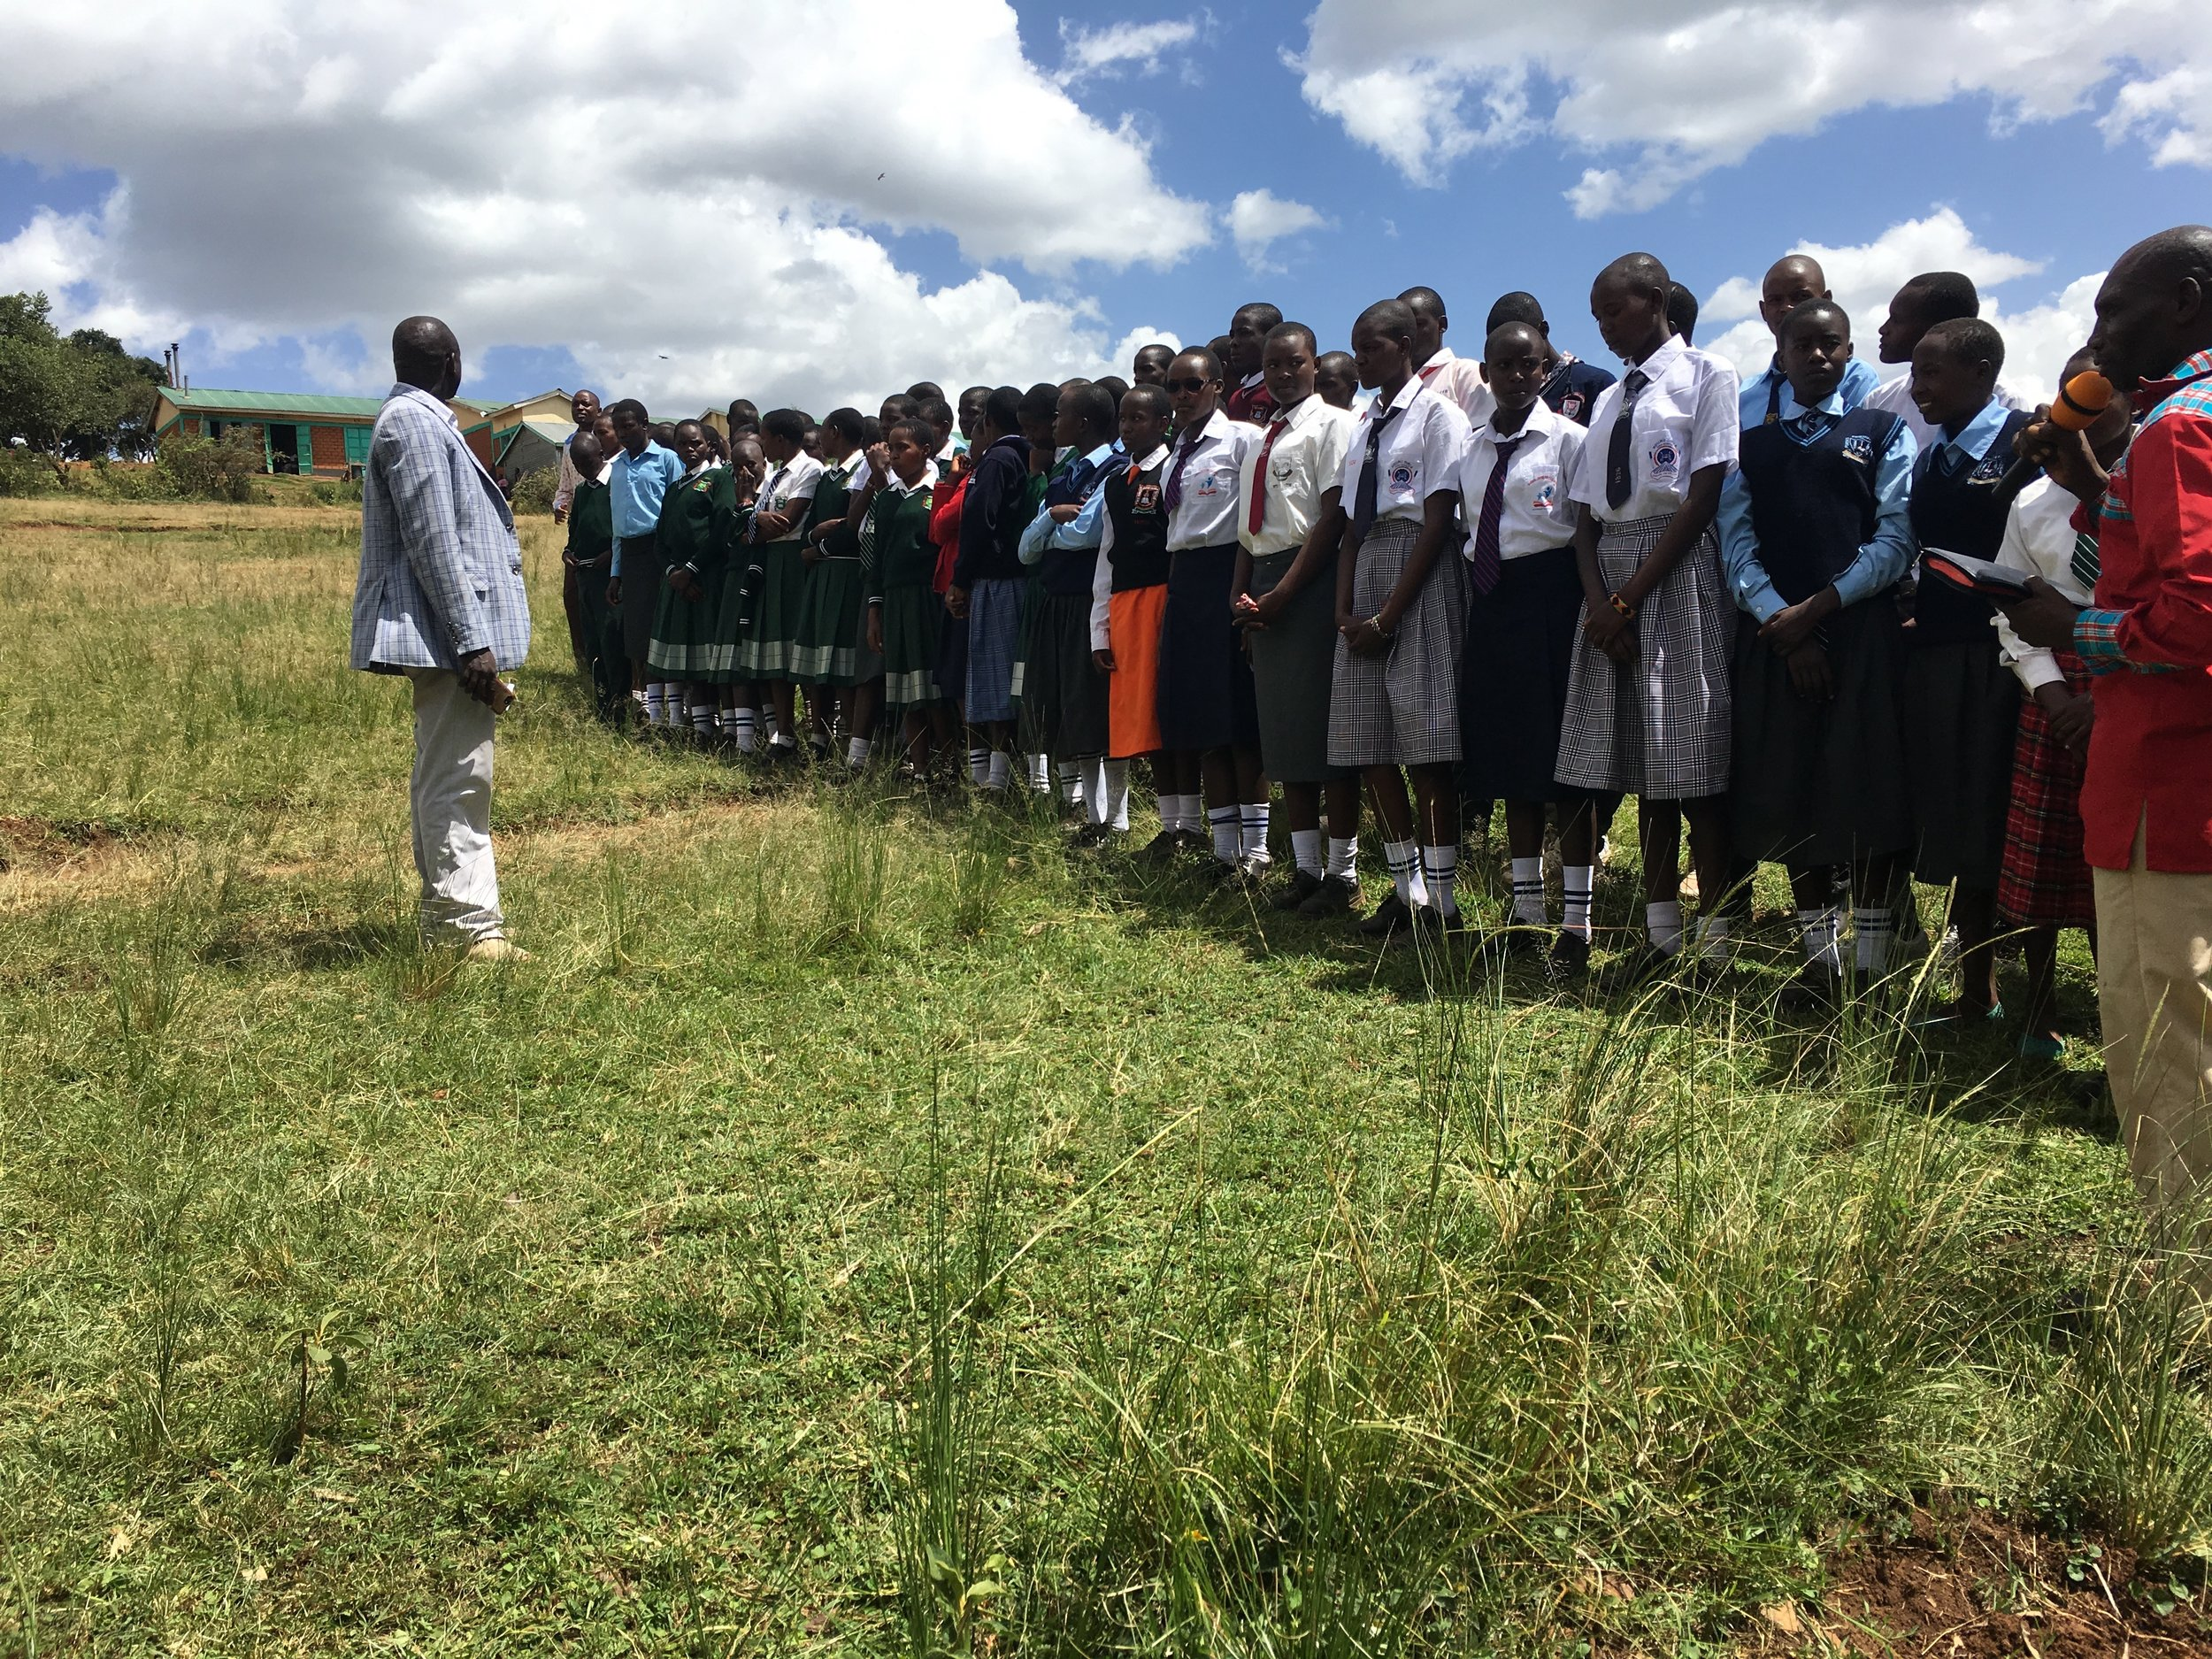 Graduates line up outside of school wearing their new uniforms.